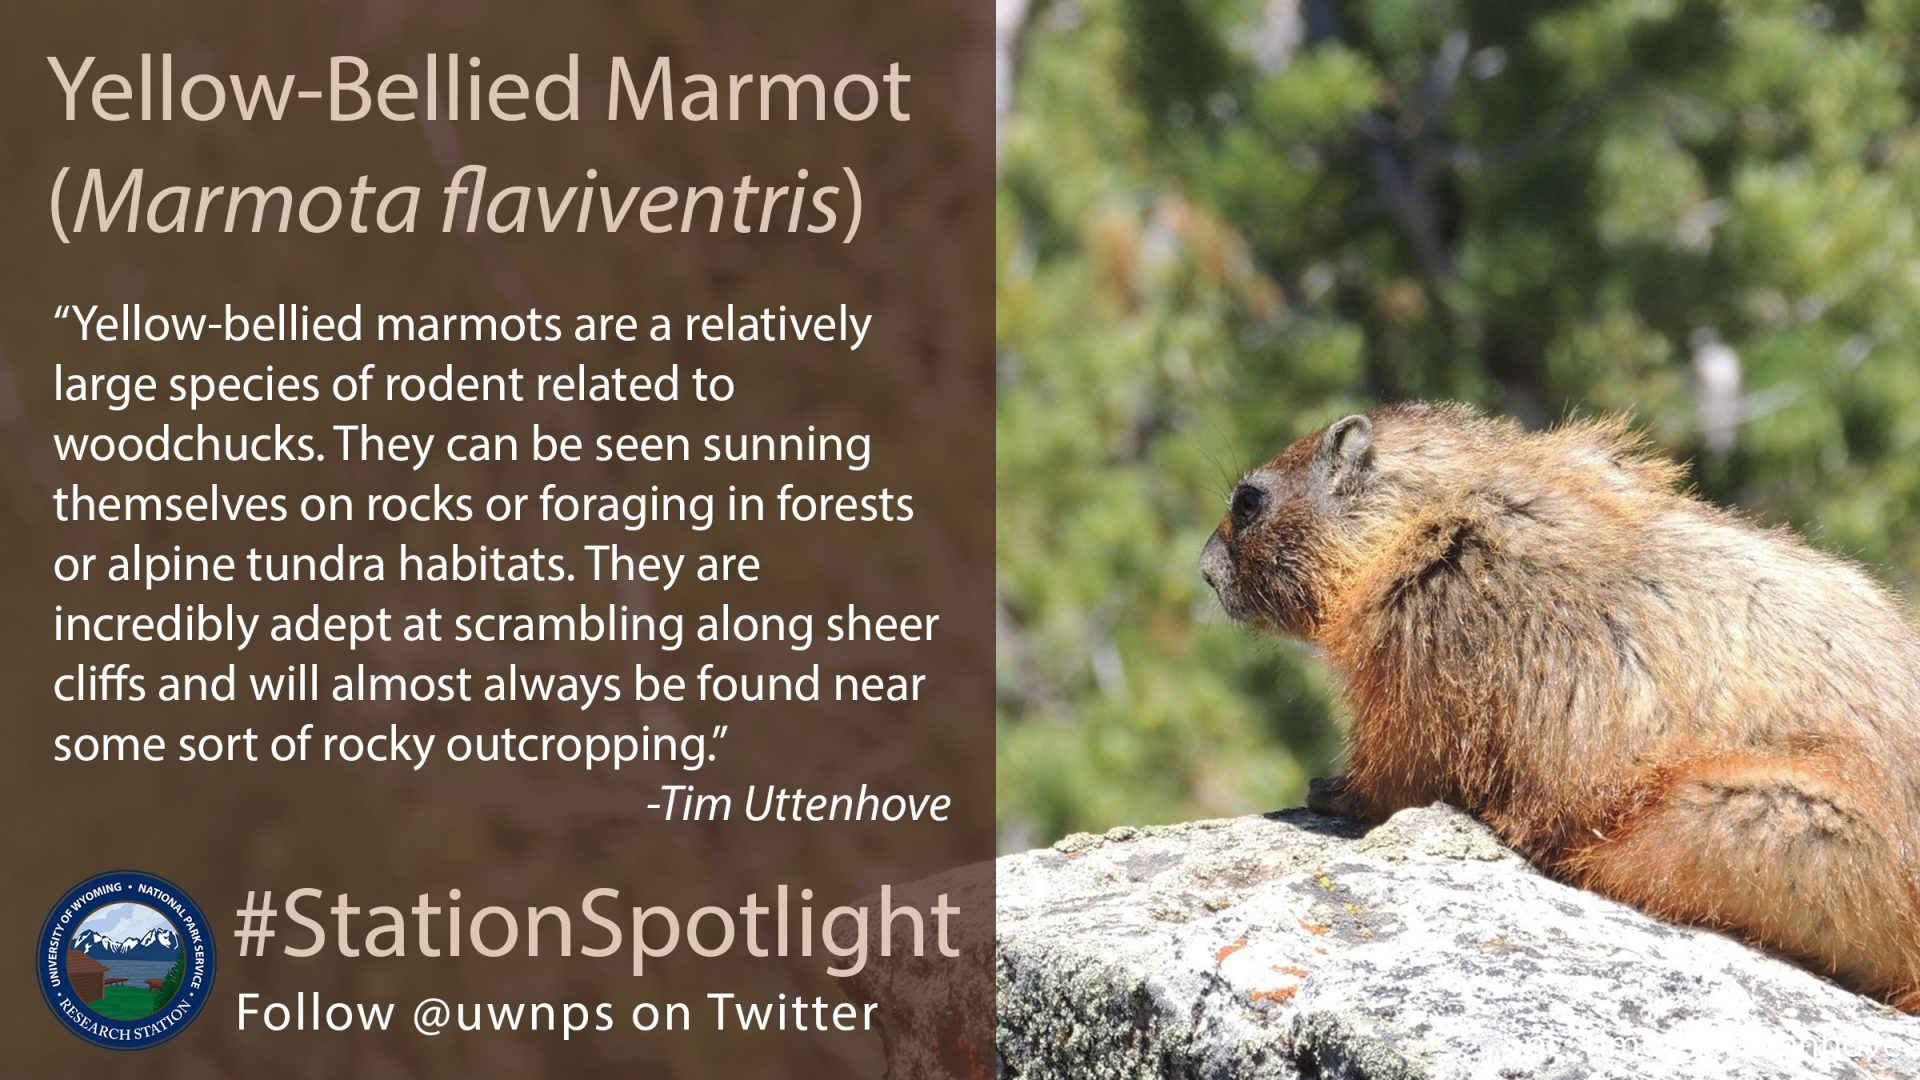 Furry marmot sits on a rock, looking into the forest behind